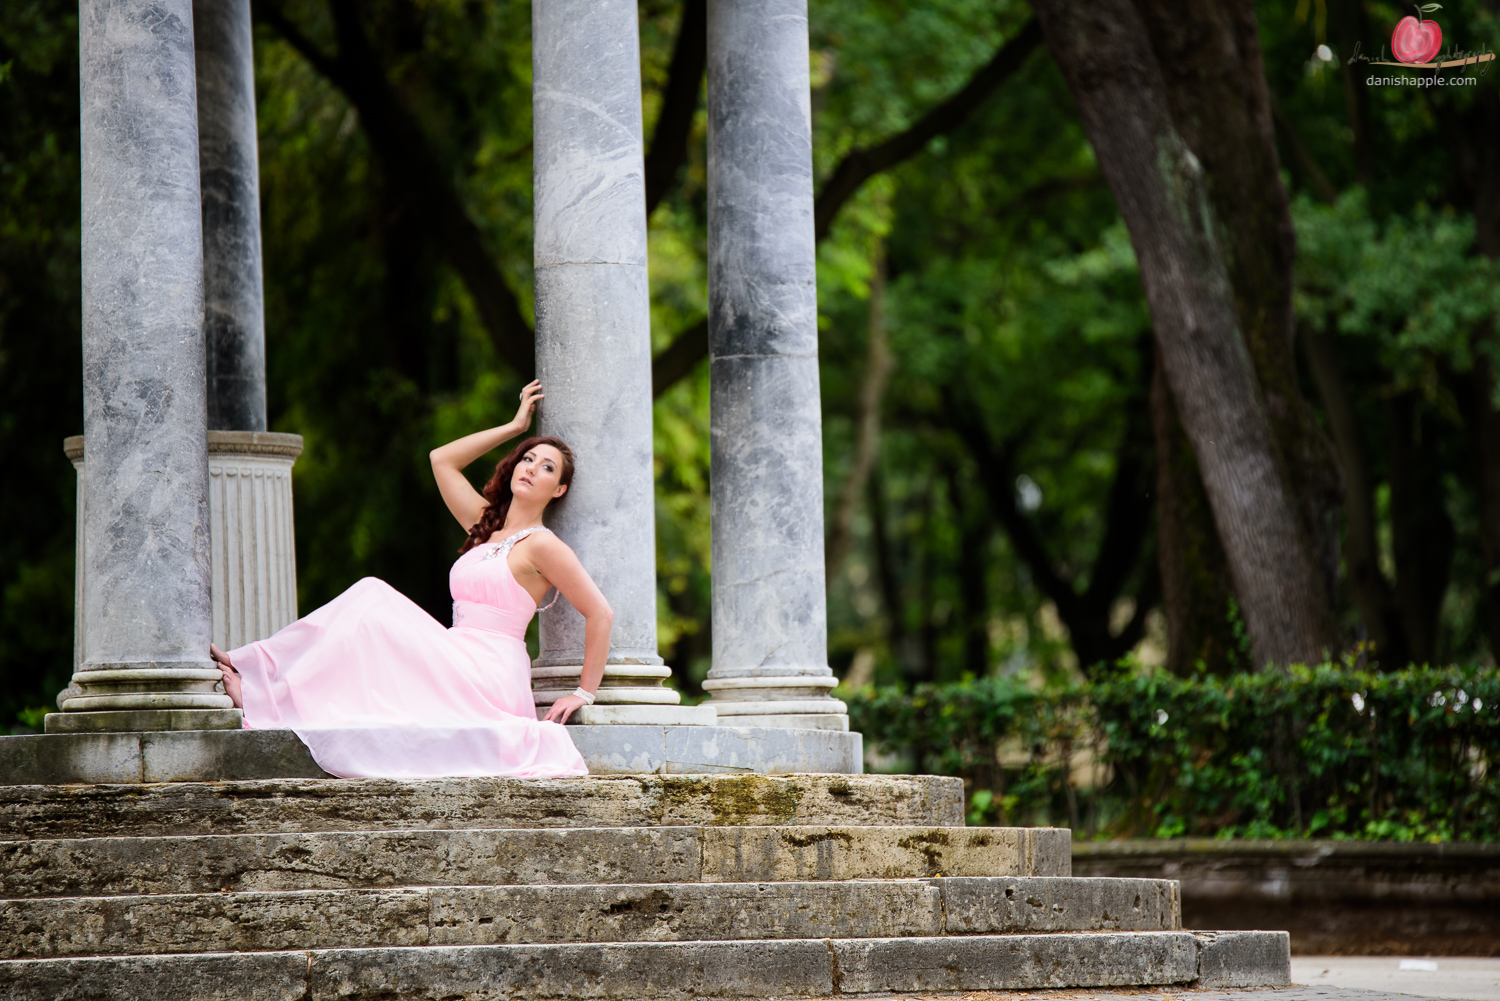 Nikon D810 For Wedding Photography: Wedding And Fashion Photography Abroad: Location, Location